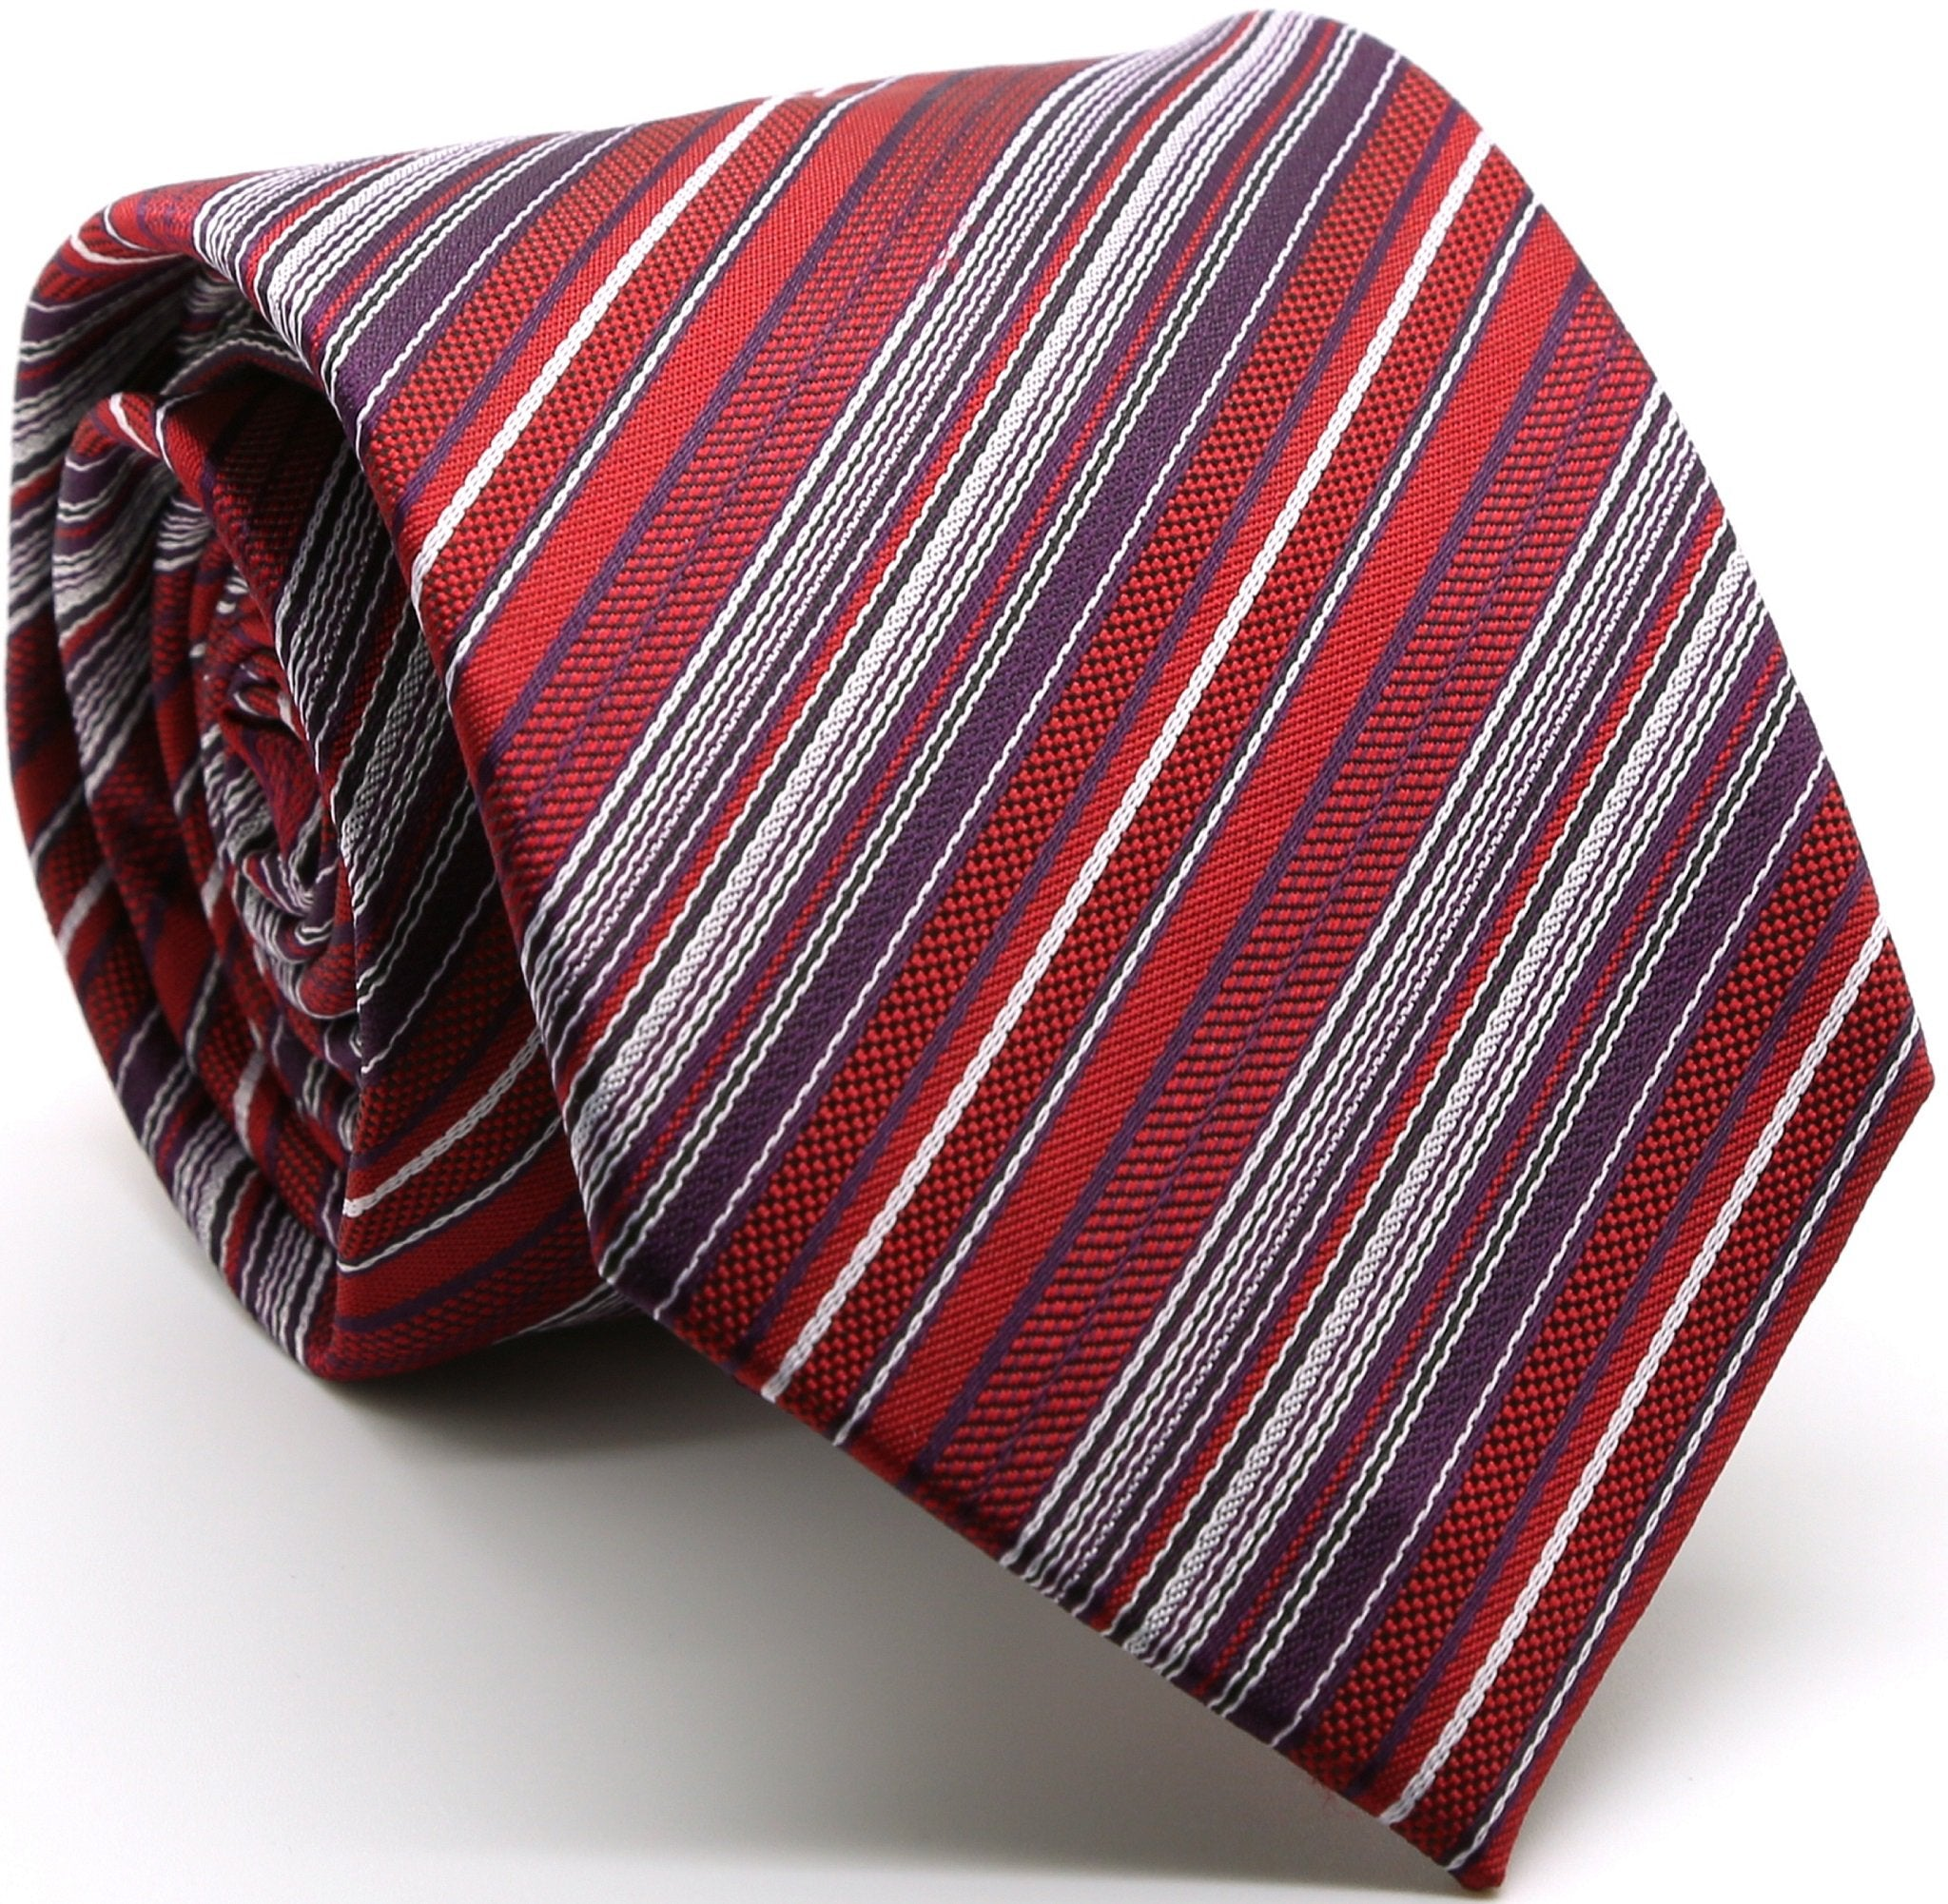 Mens Dads Classic Red Striped Pattern Business Casual Necktie & Hanky Set S-11 - Giorgio's Menswear